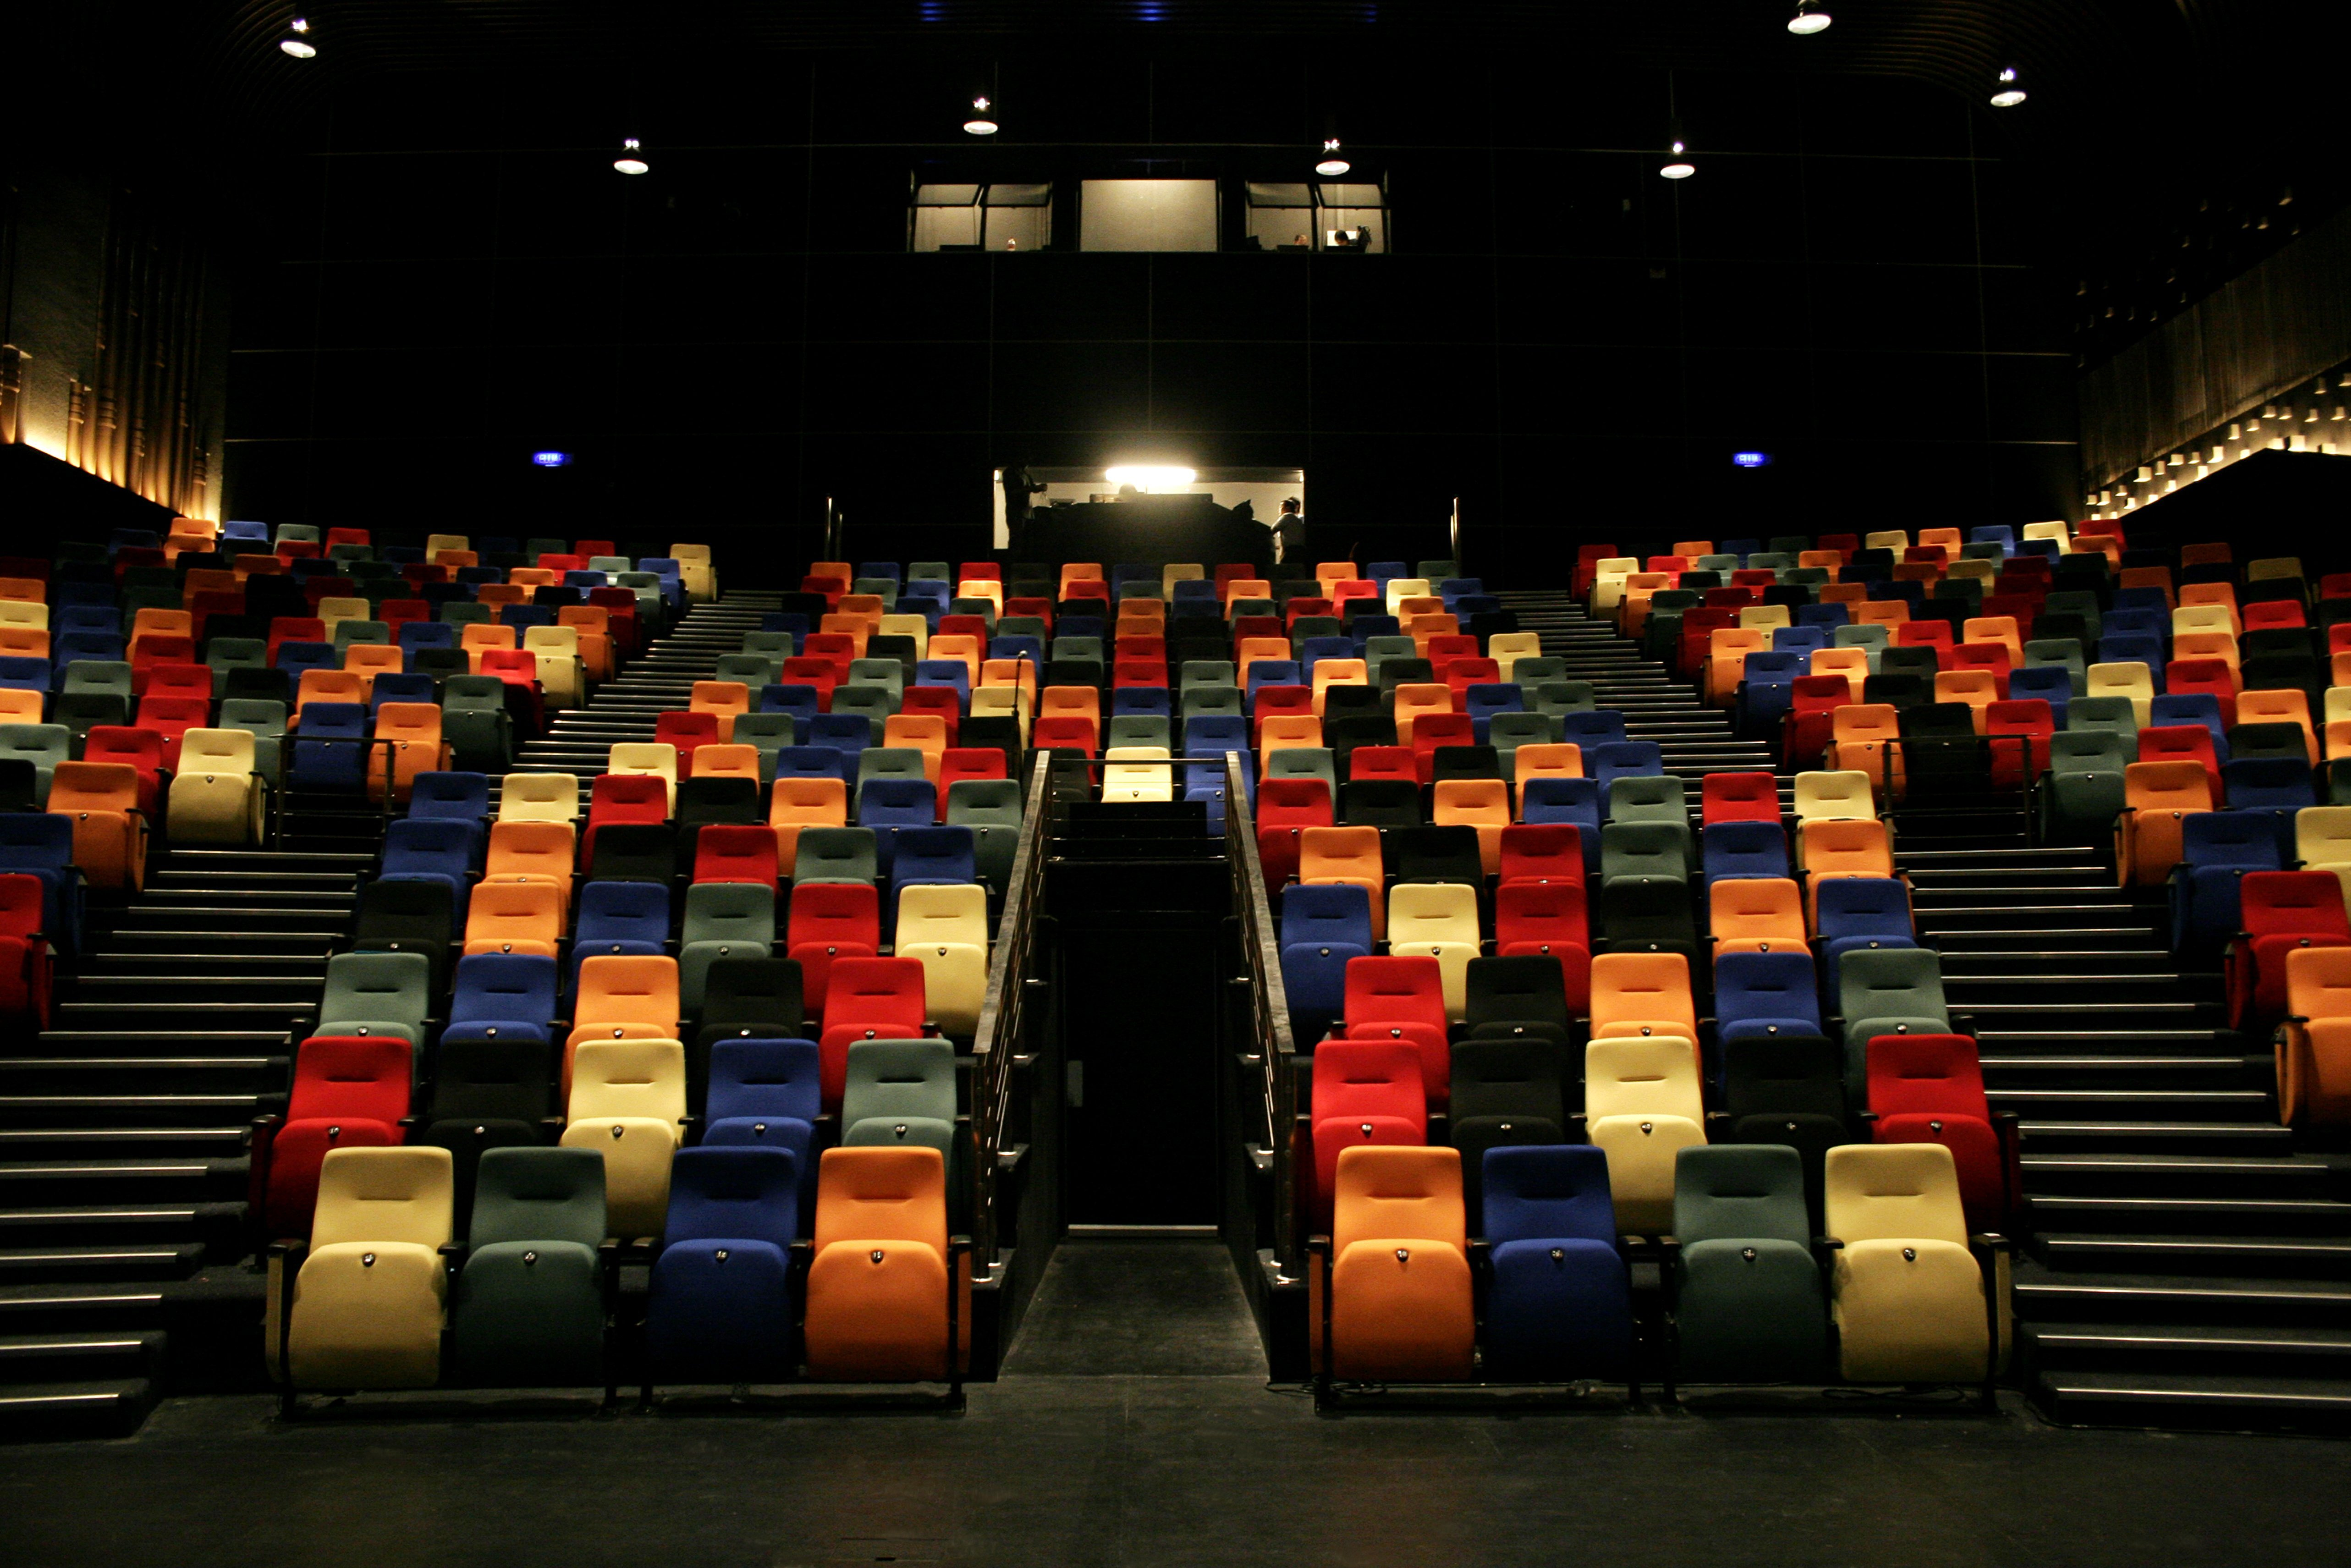 View of multicolored seats in the darkened auditorium of the new Kuala Lumpur Performing Arts Centre | Photo: Getty Images